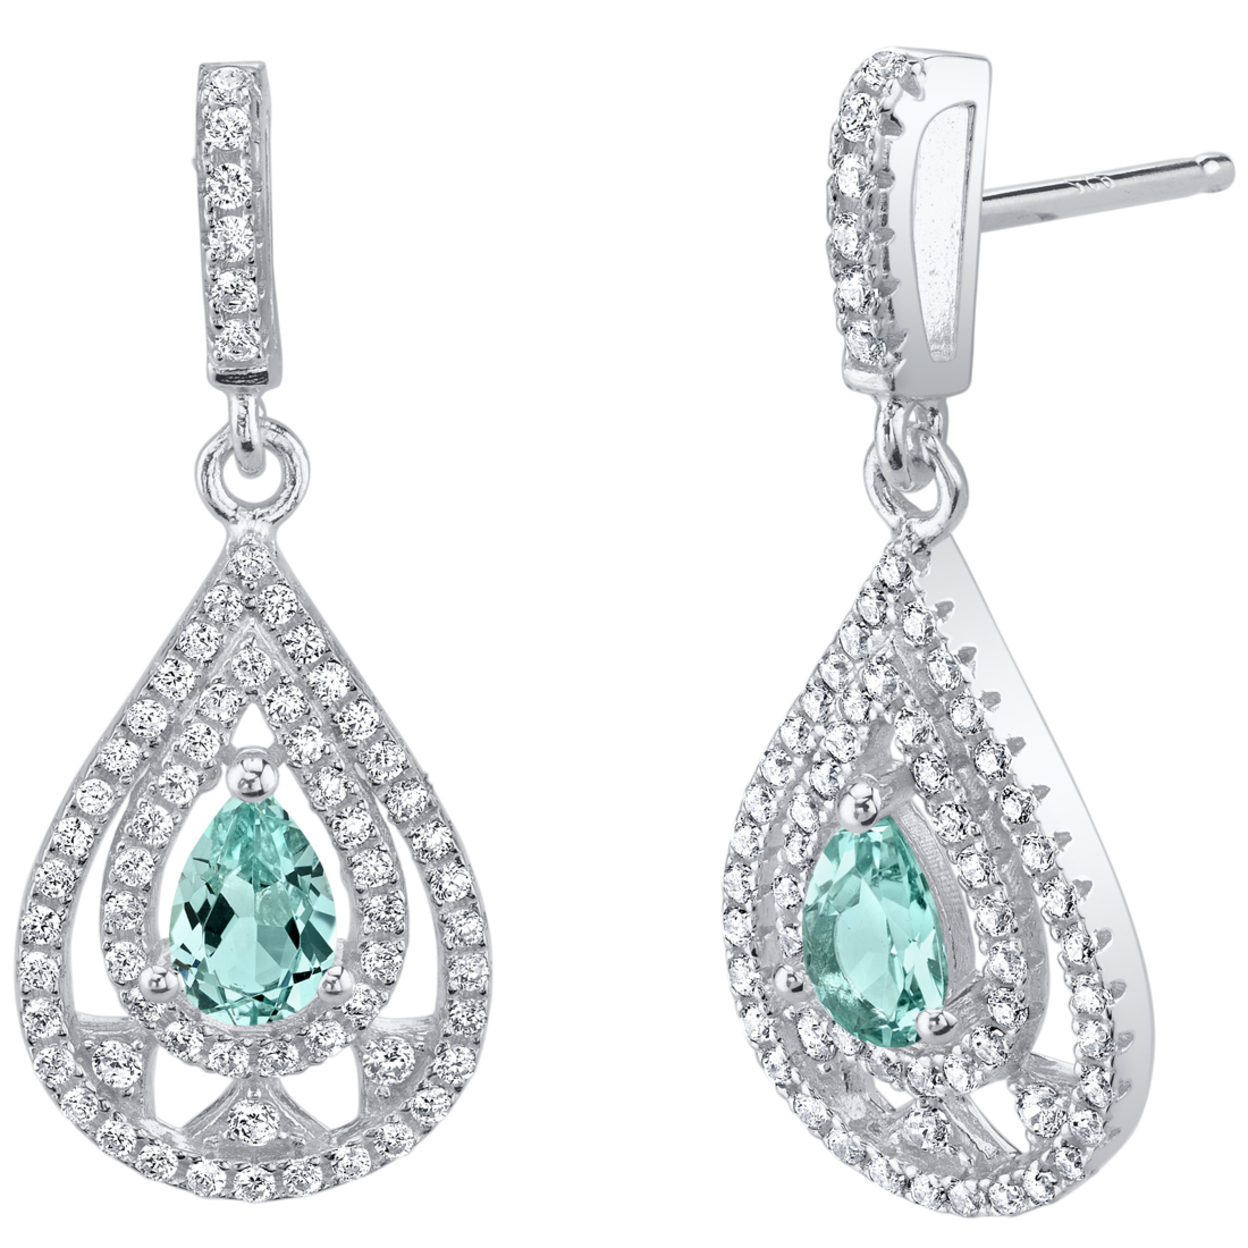 Oravo Simulated Paraiba Tourmaline Sterling Silver Chandelier Earrings